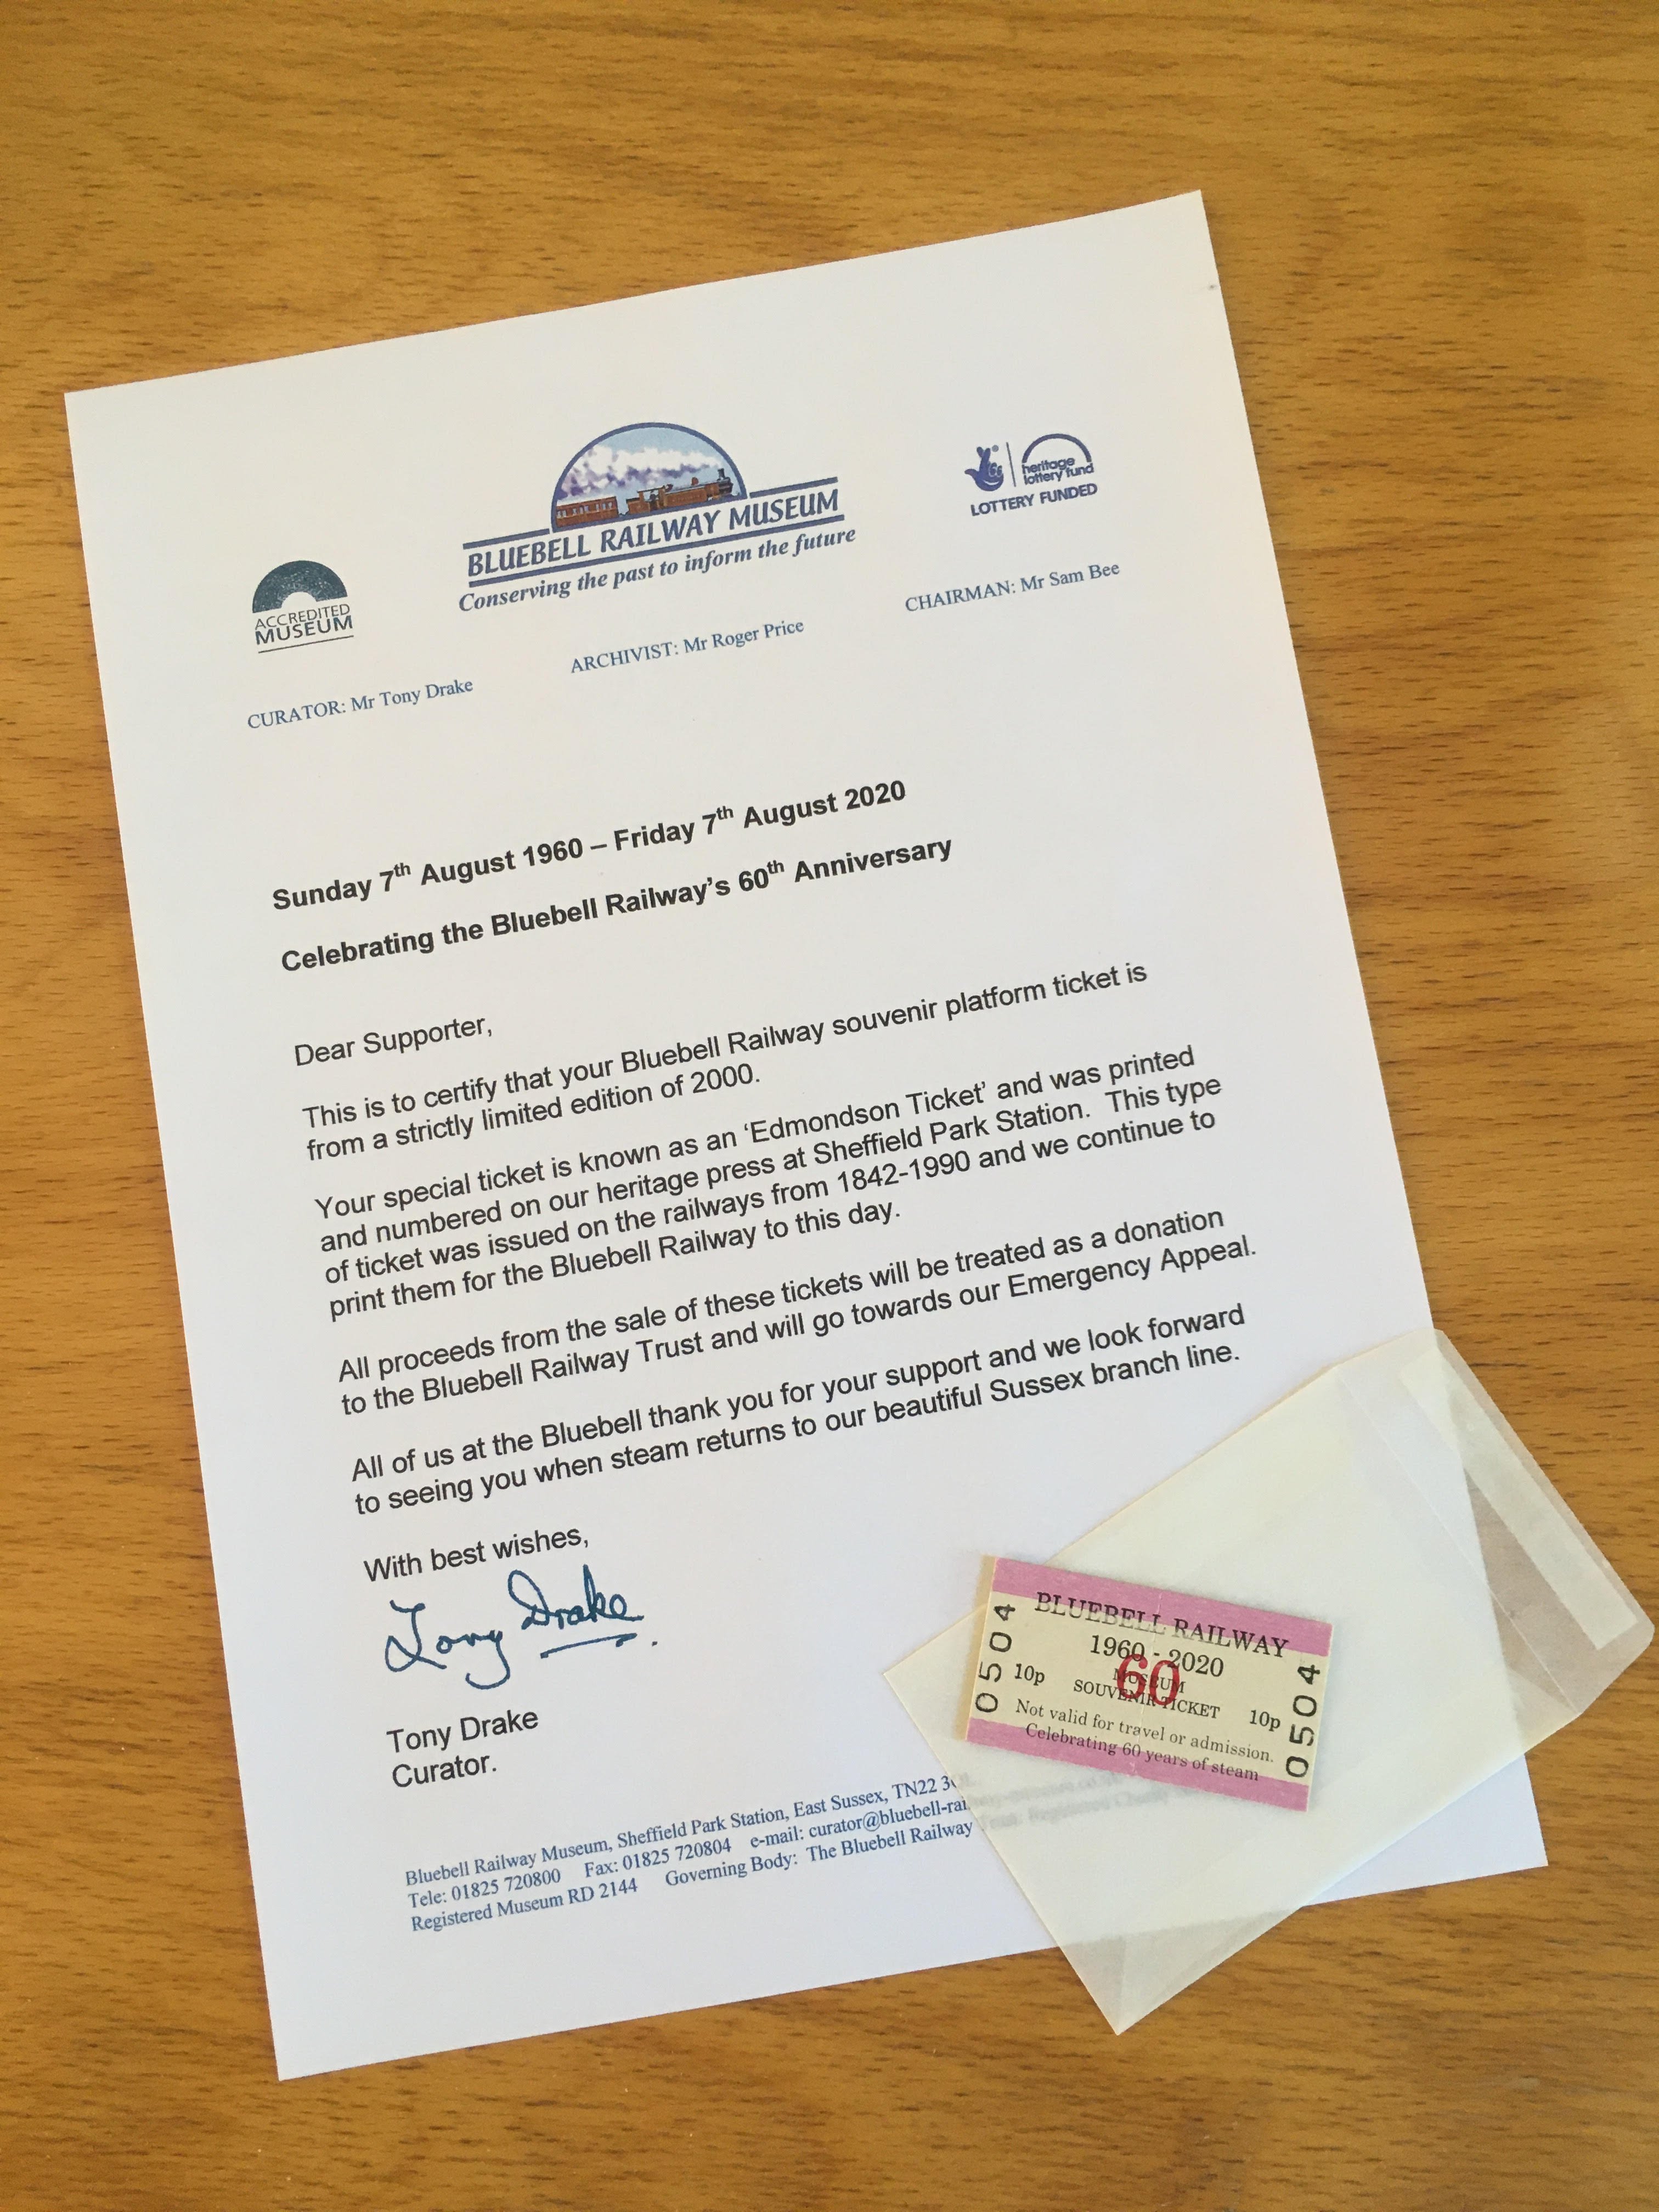 bluebell_railway_60th_anniversary_ticket_letter_4032